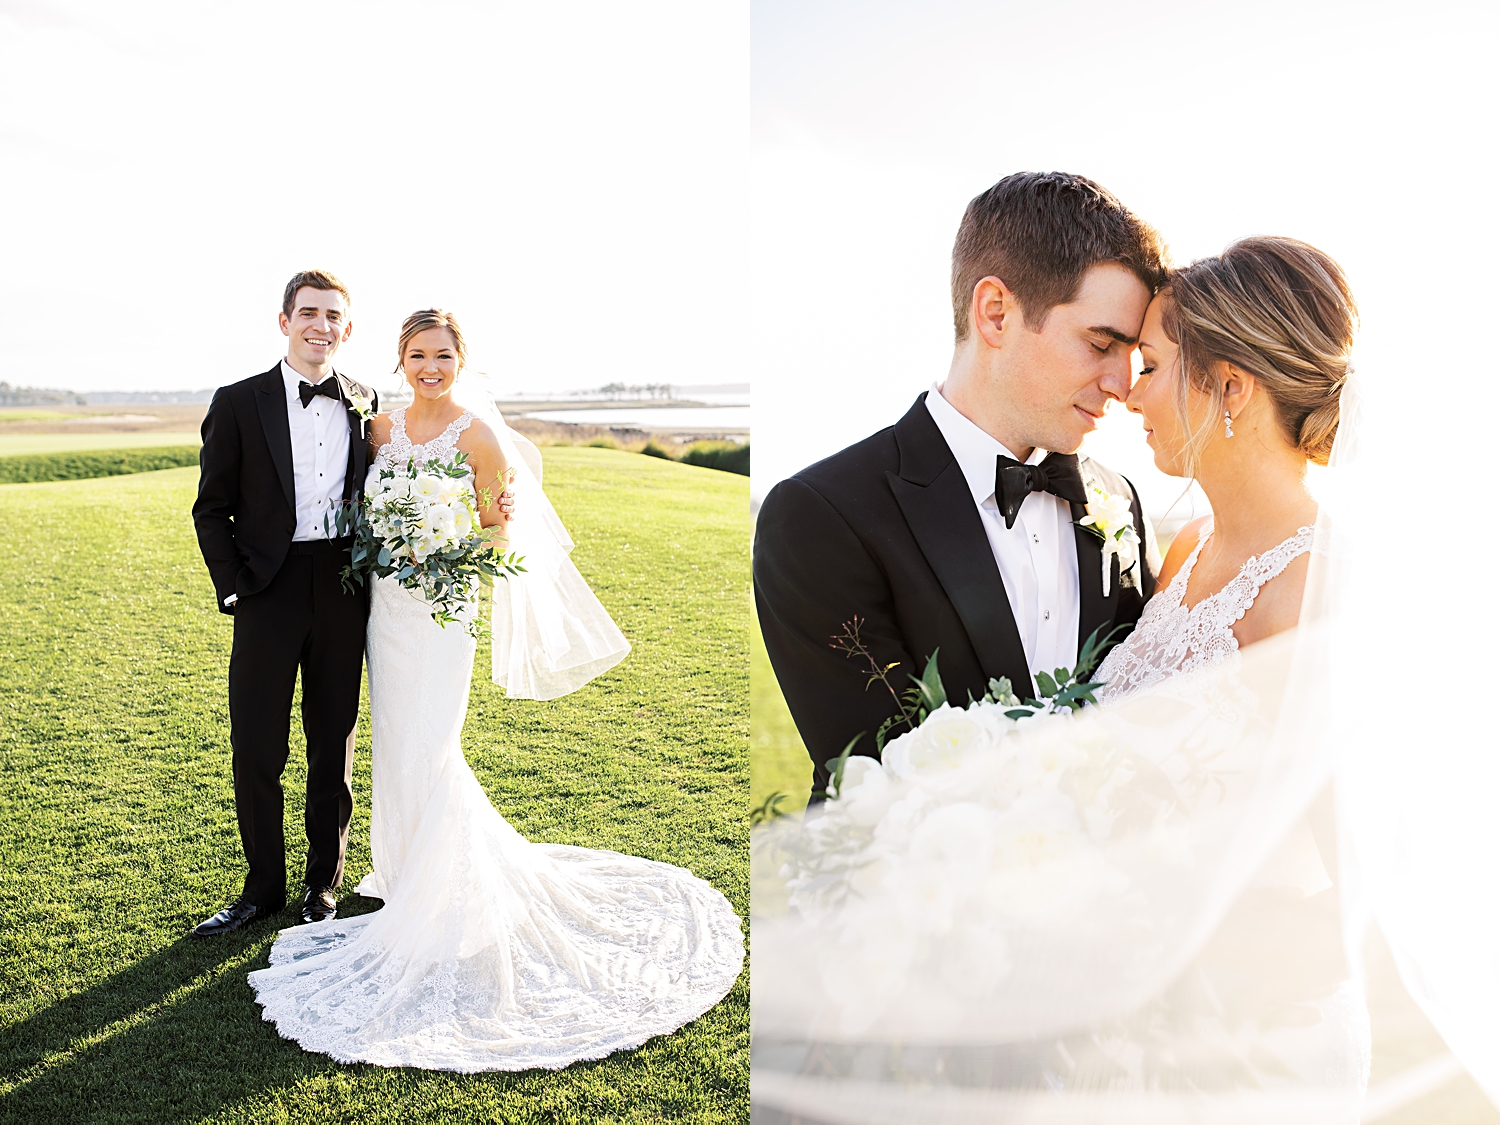 harbour-town-golf-links-wedding-photographer-sea-pines-wedding-jb-marie-photography